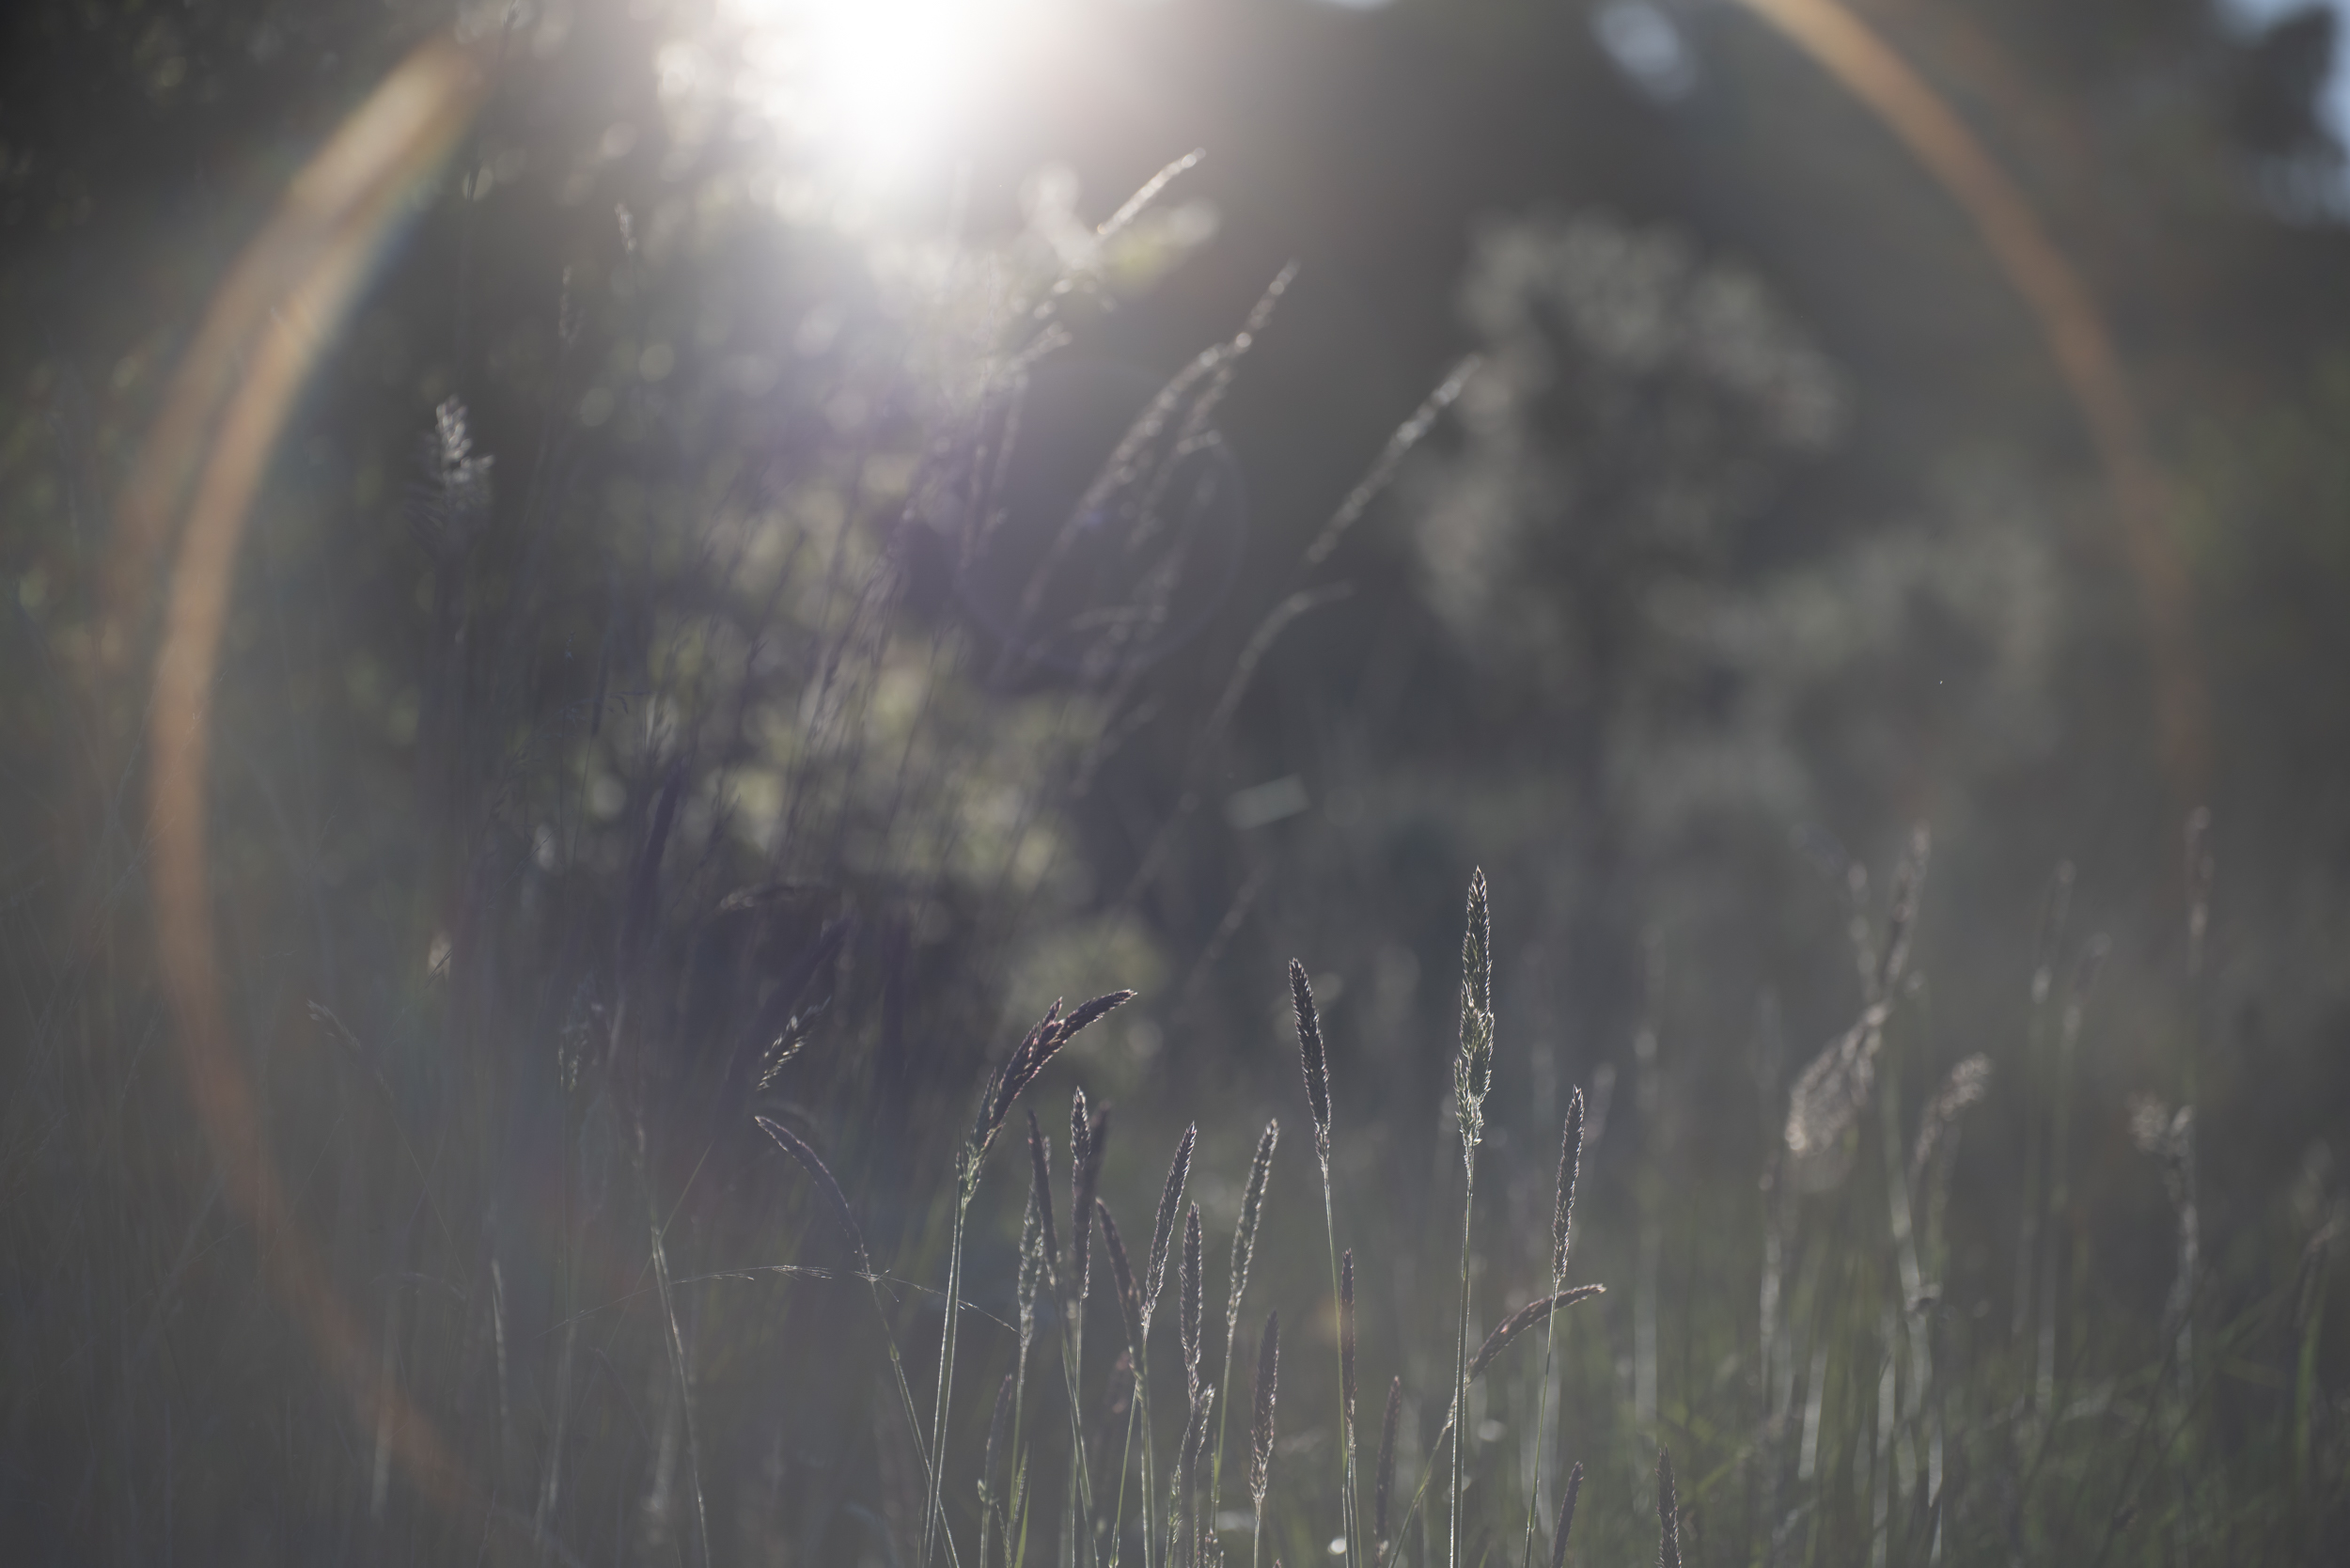 RAW image - strong flare and loss of contrast - wide open f/2.8